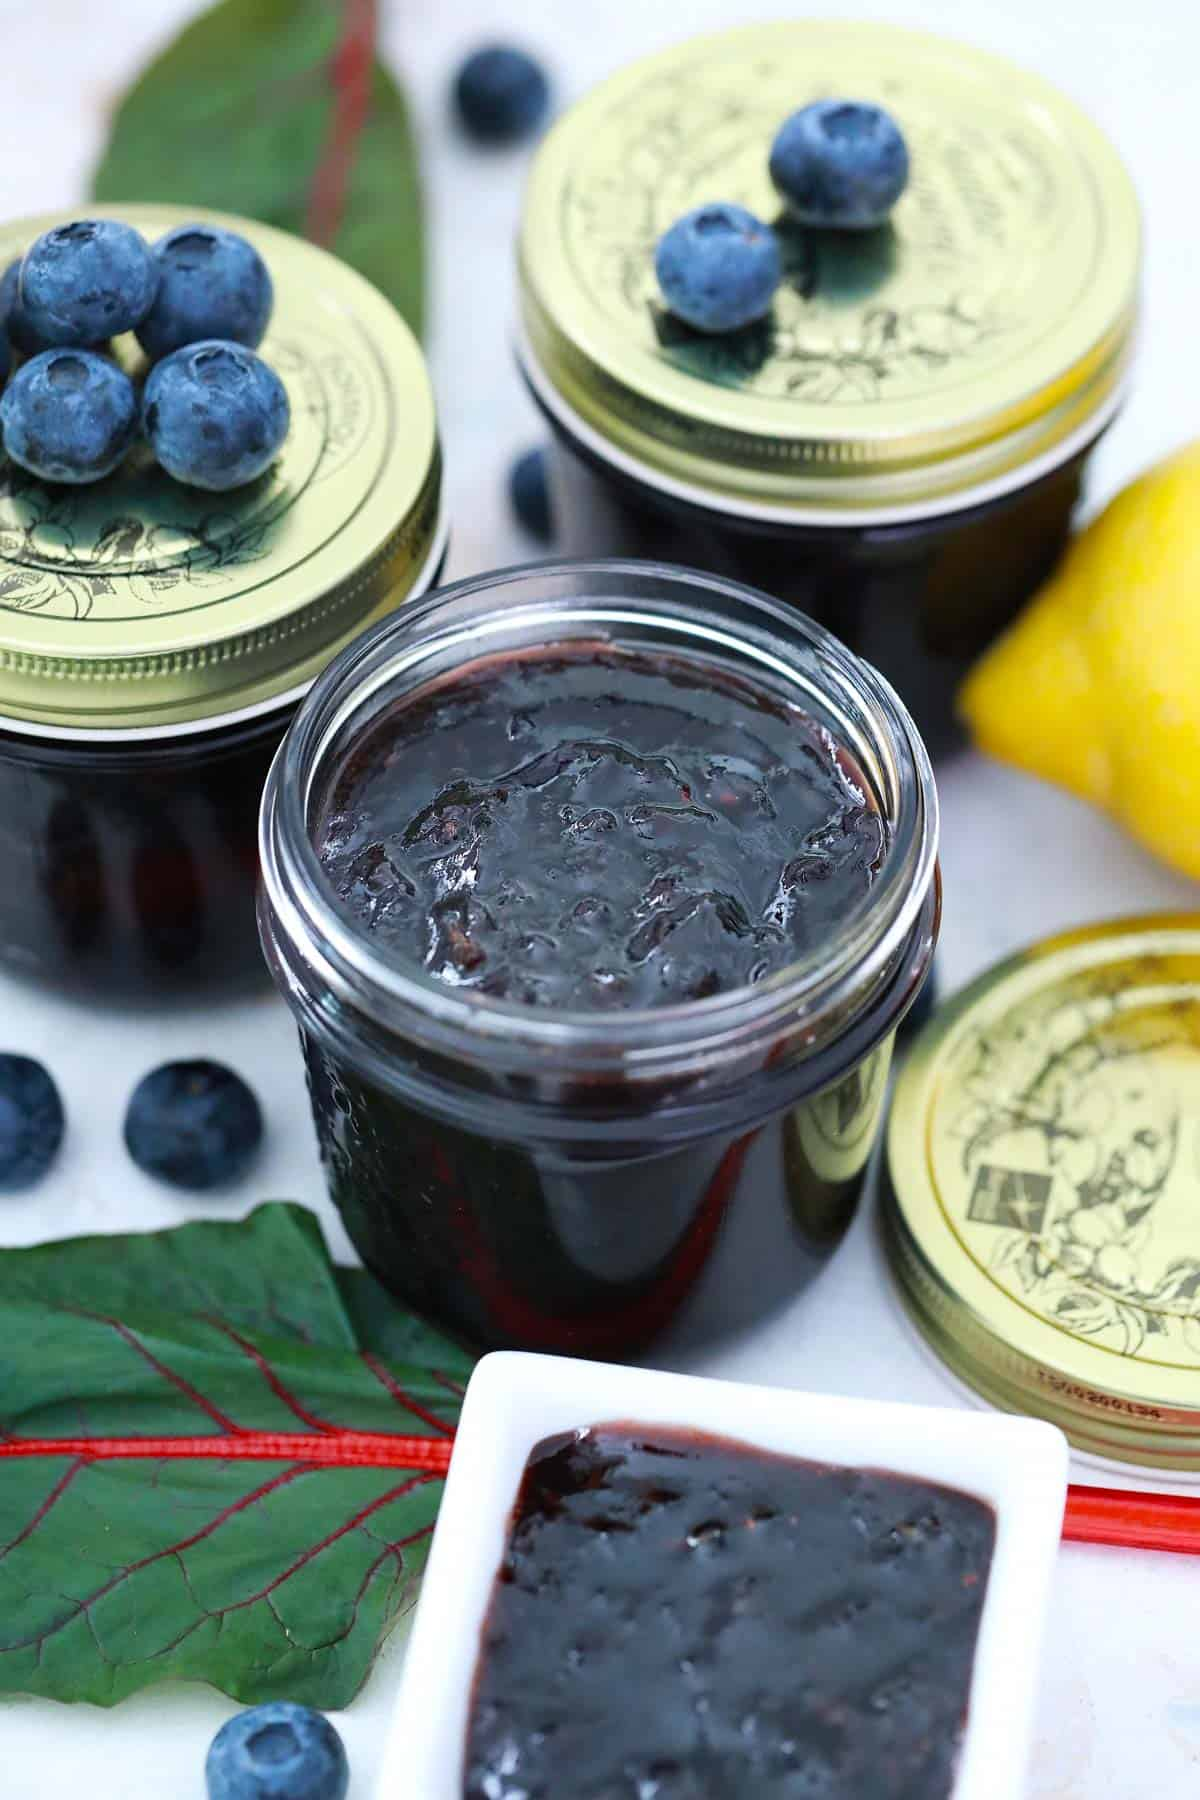 Jars of jam, one opened others with lids and blueberries on top